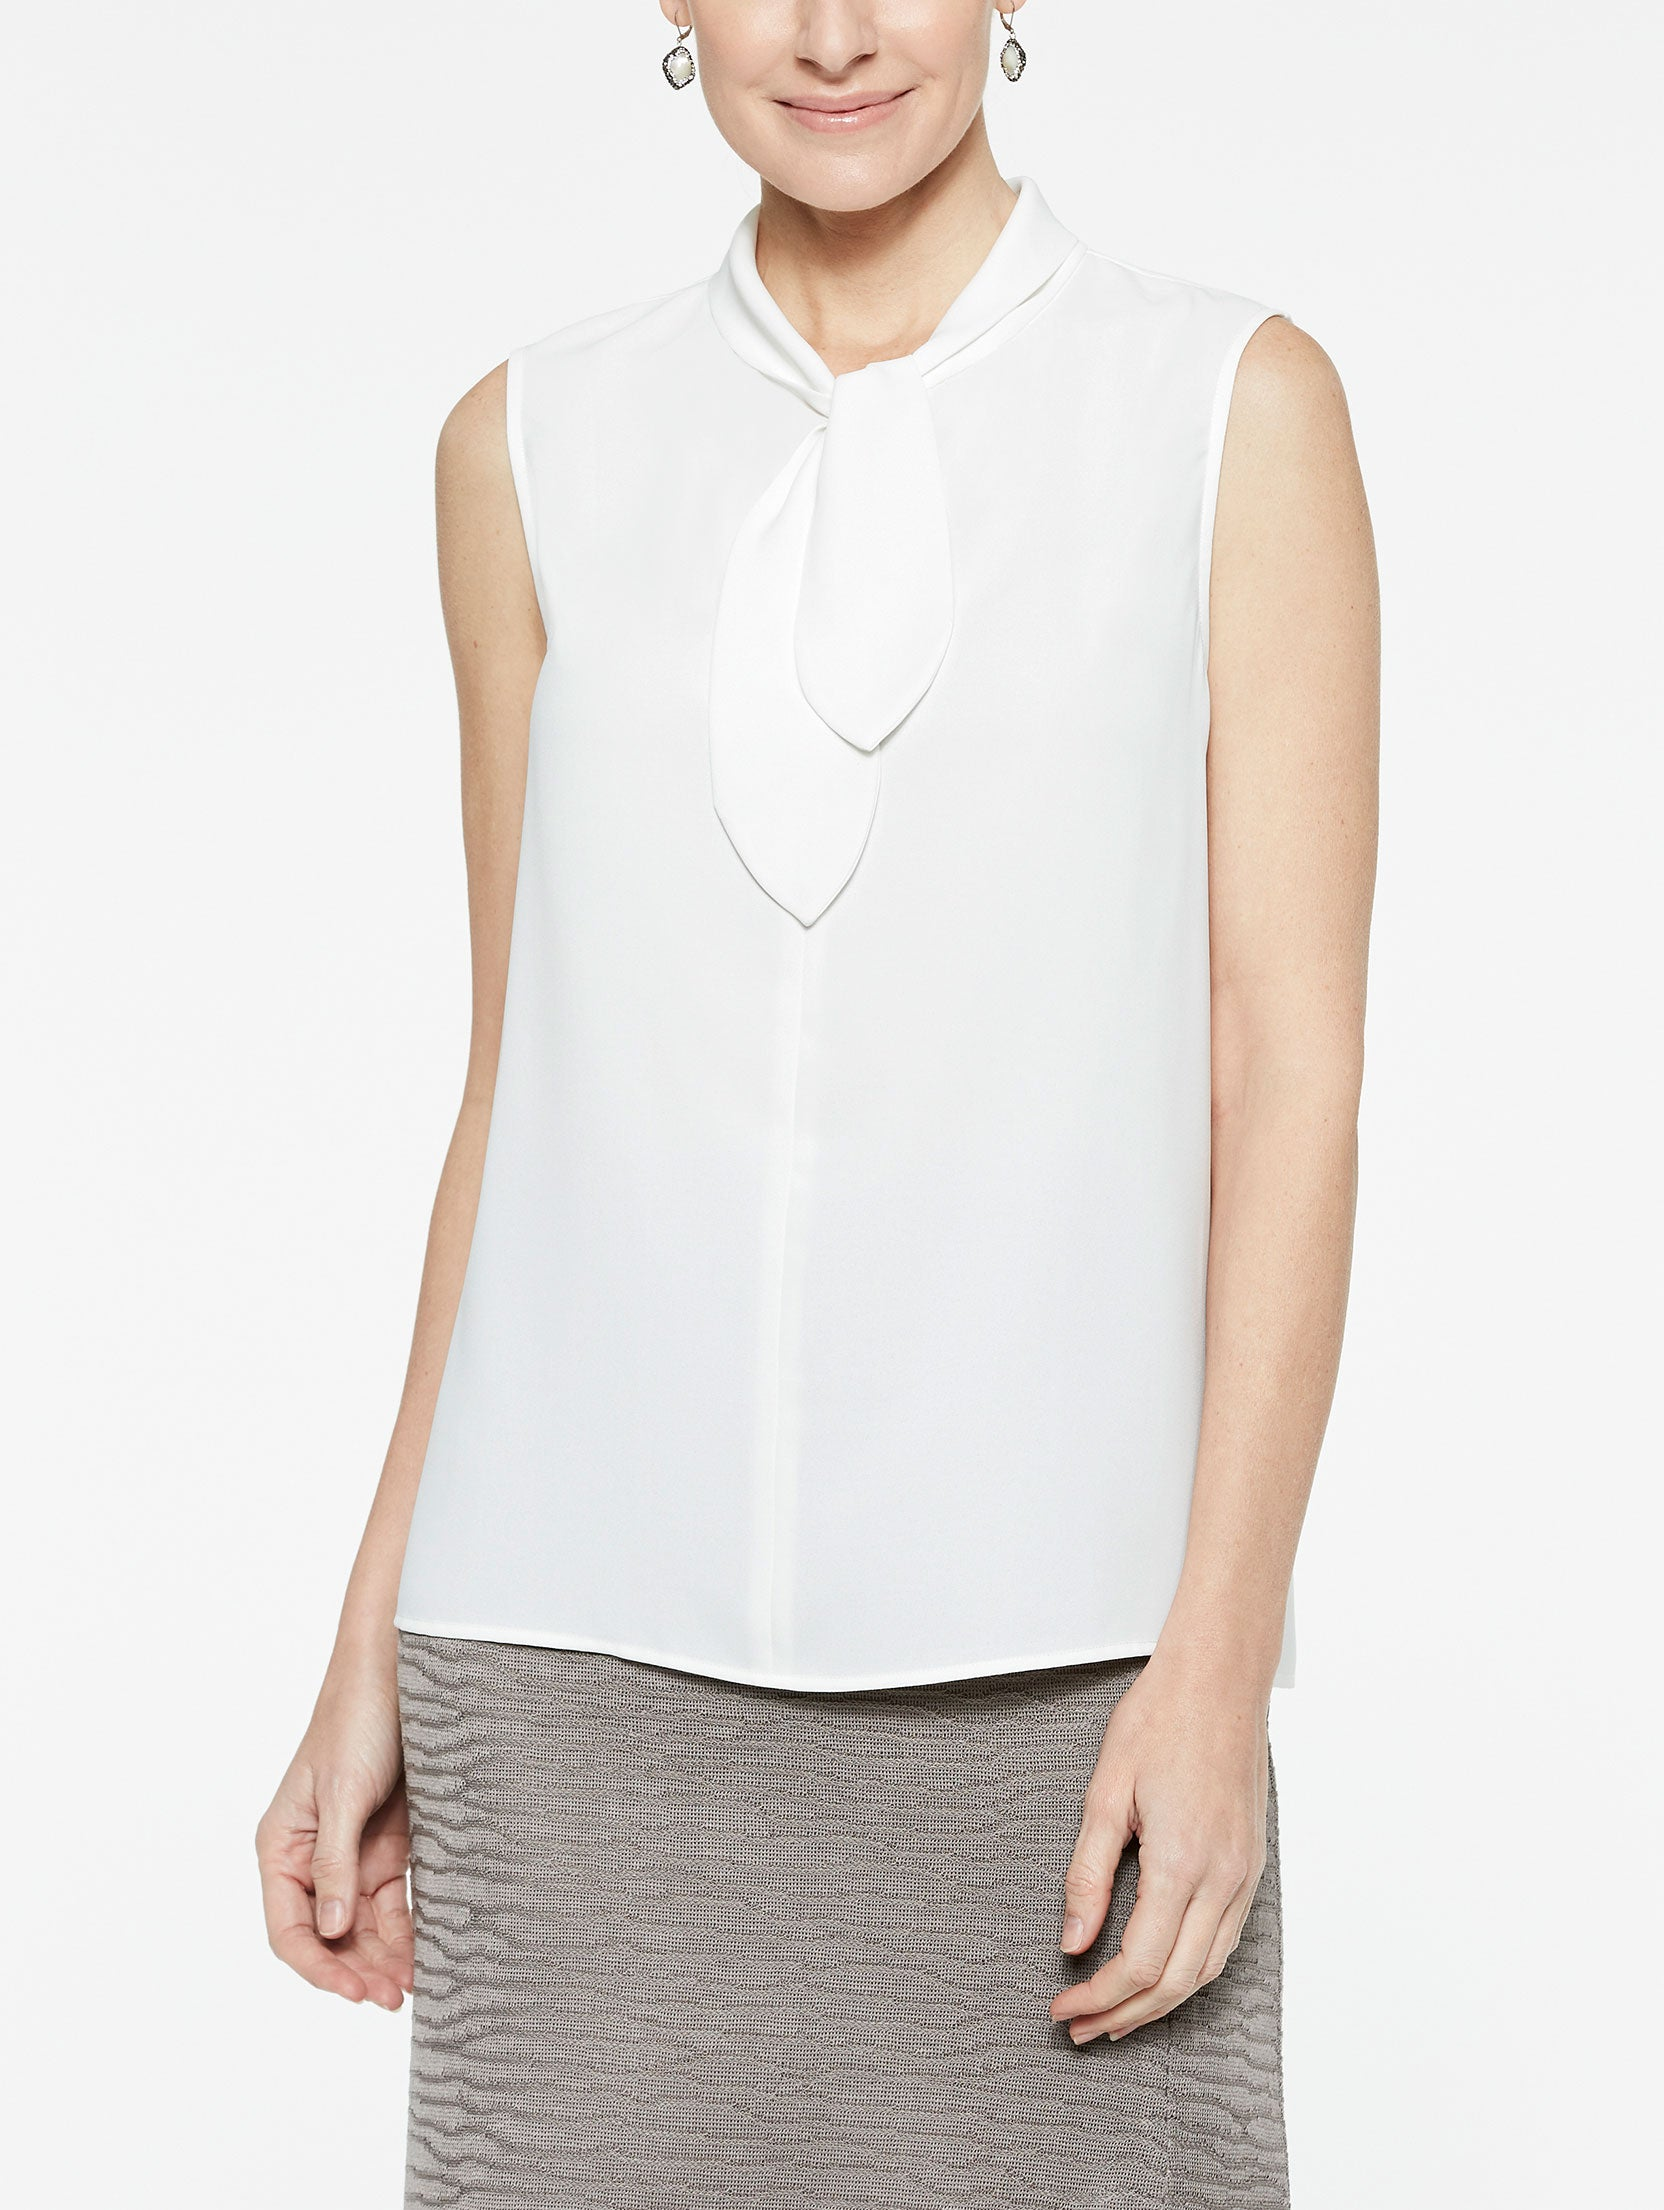 Loop and Tie Sleeveless Blouse Color White